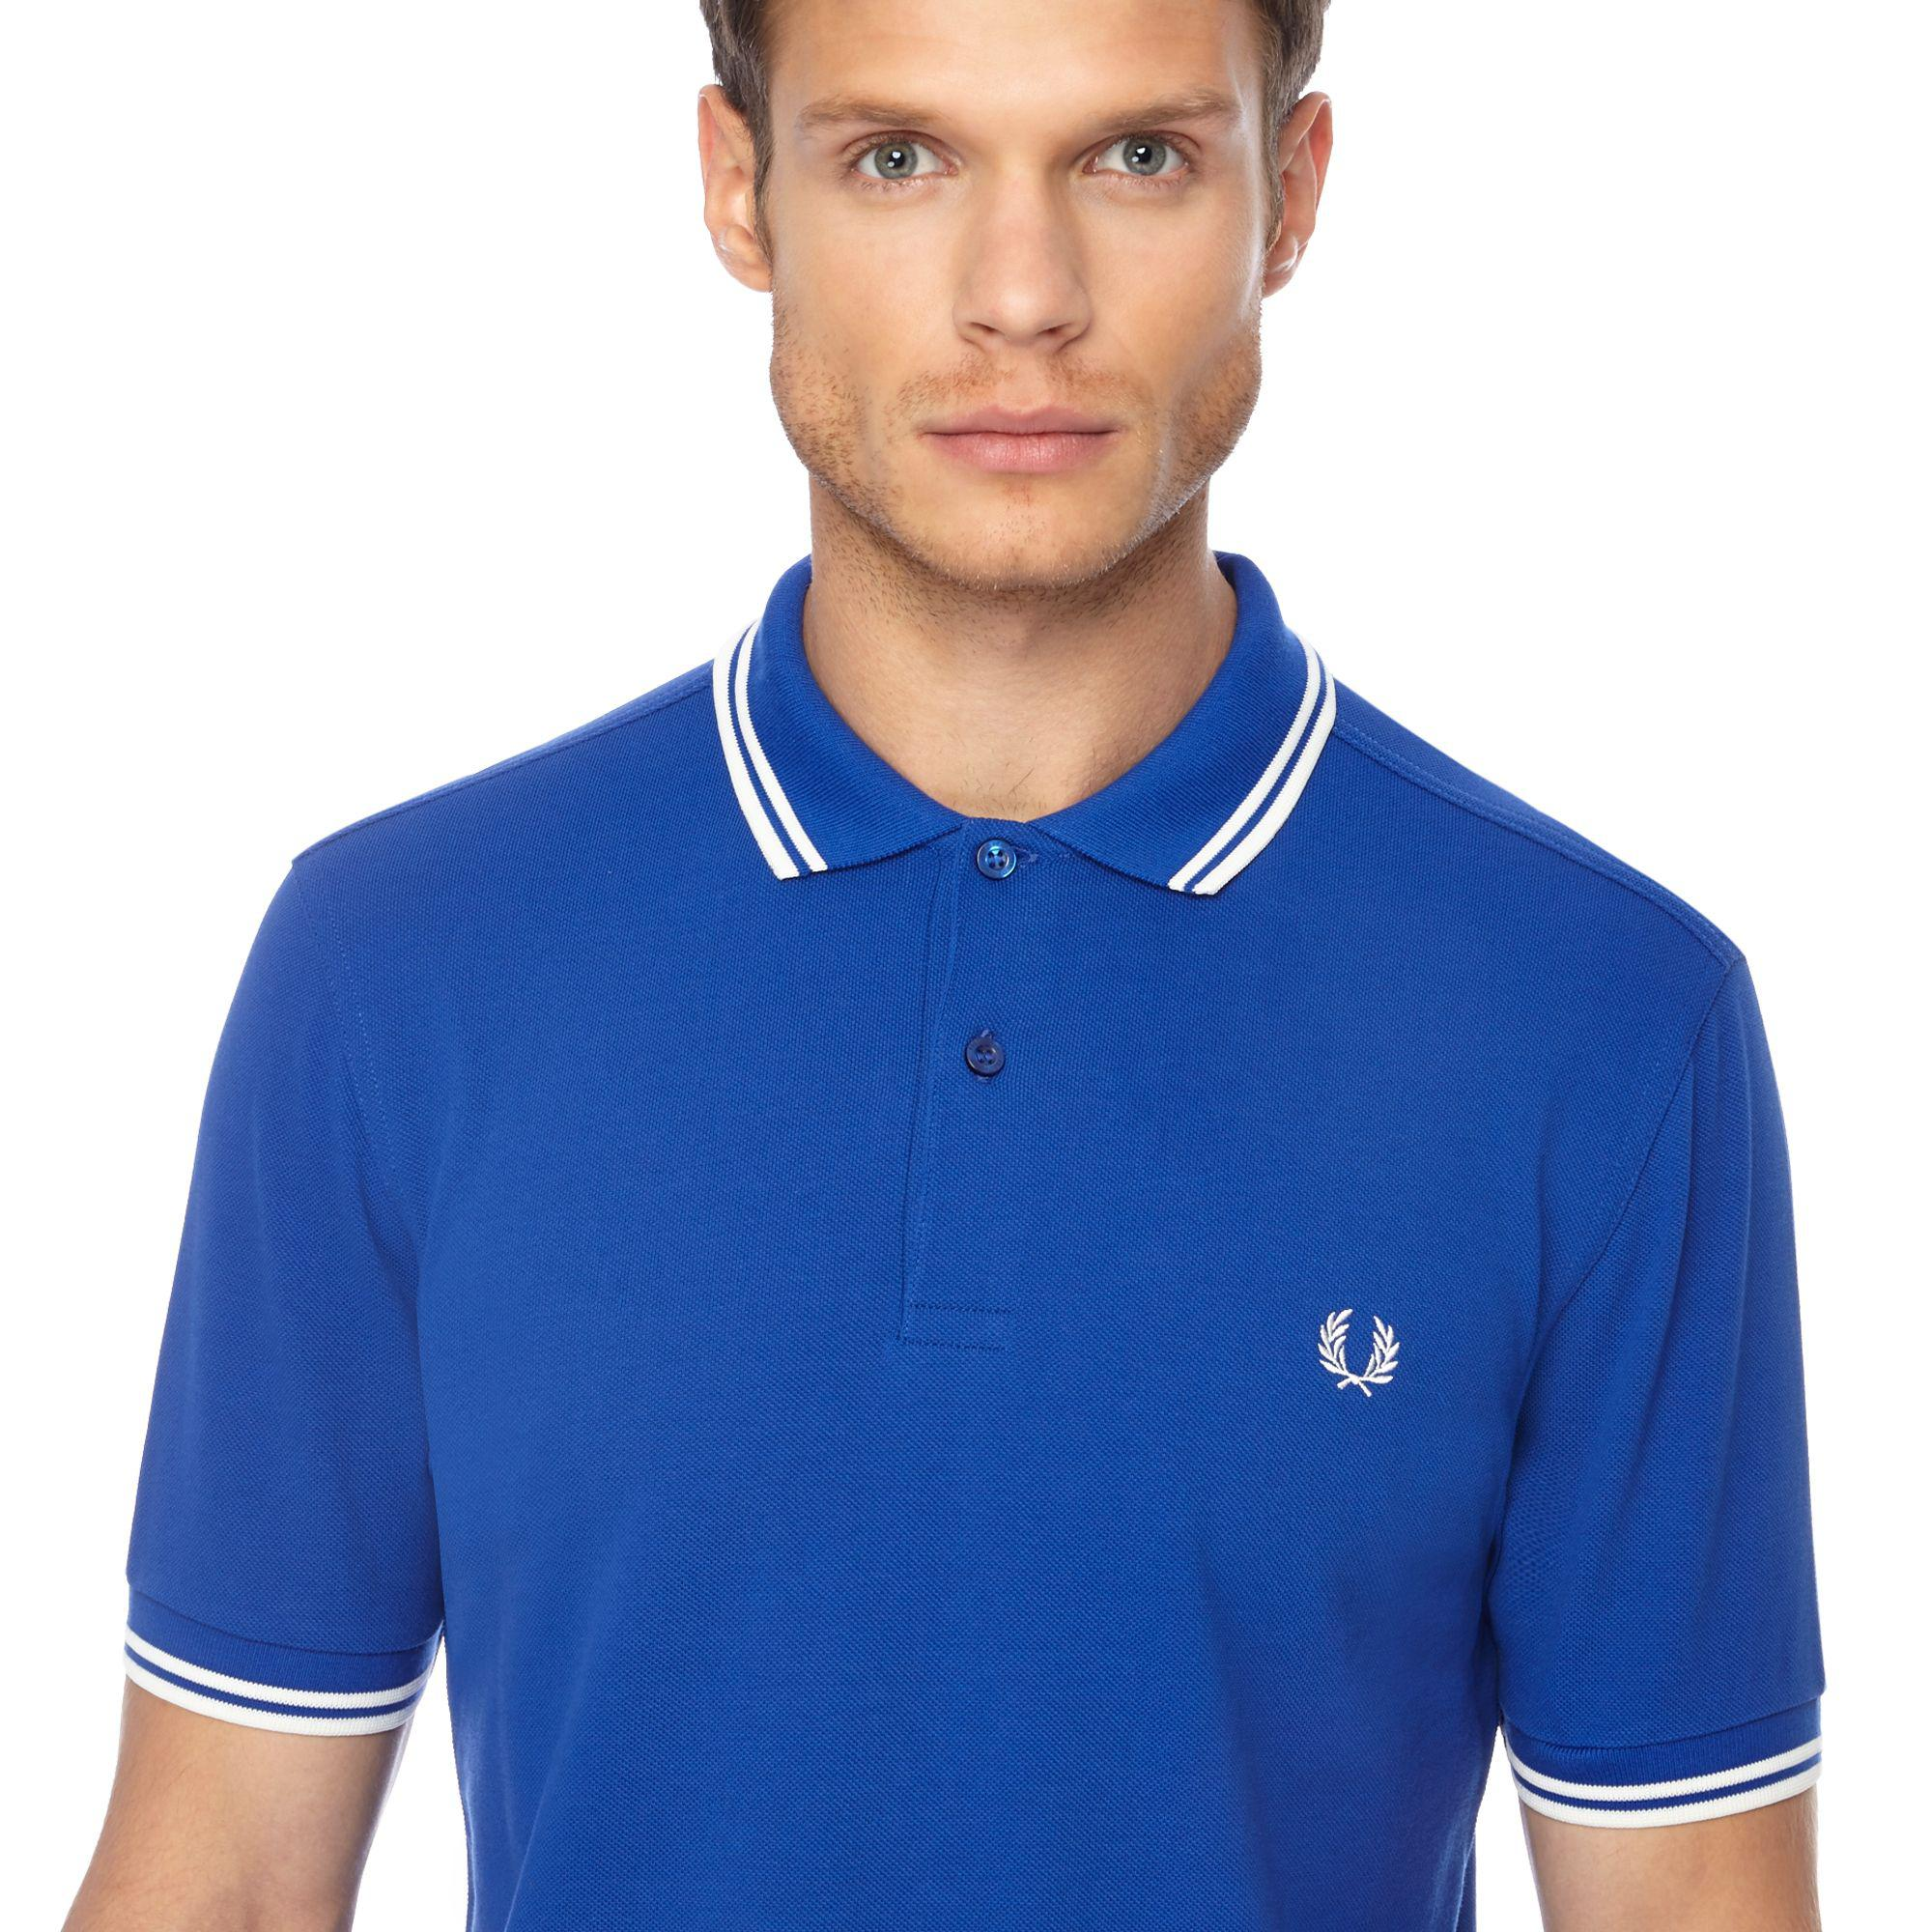 7bd95710 Tap to visit site. Fred Perry - Bright Blue Tipped Embroidered Logo Polo  Shirt for Men - Lyst